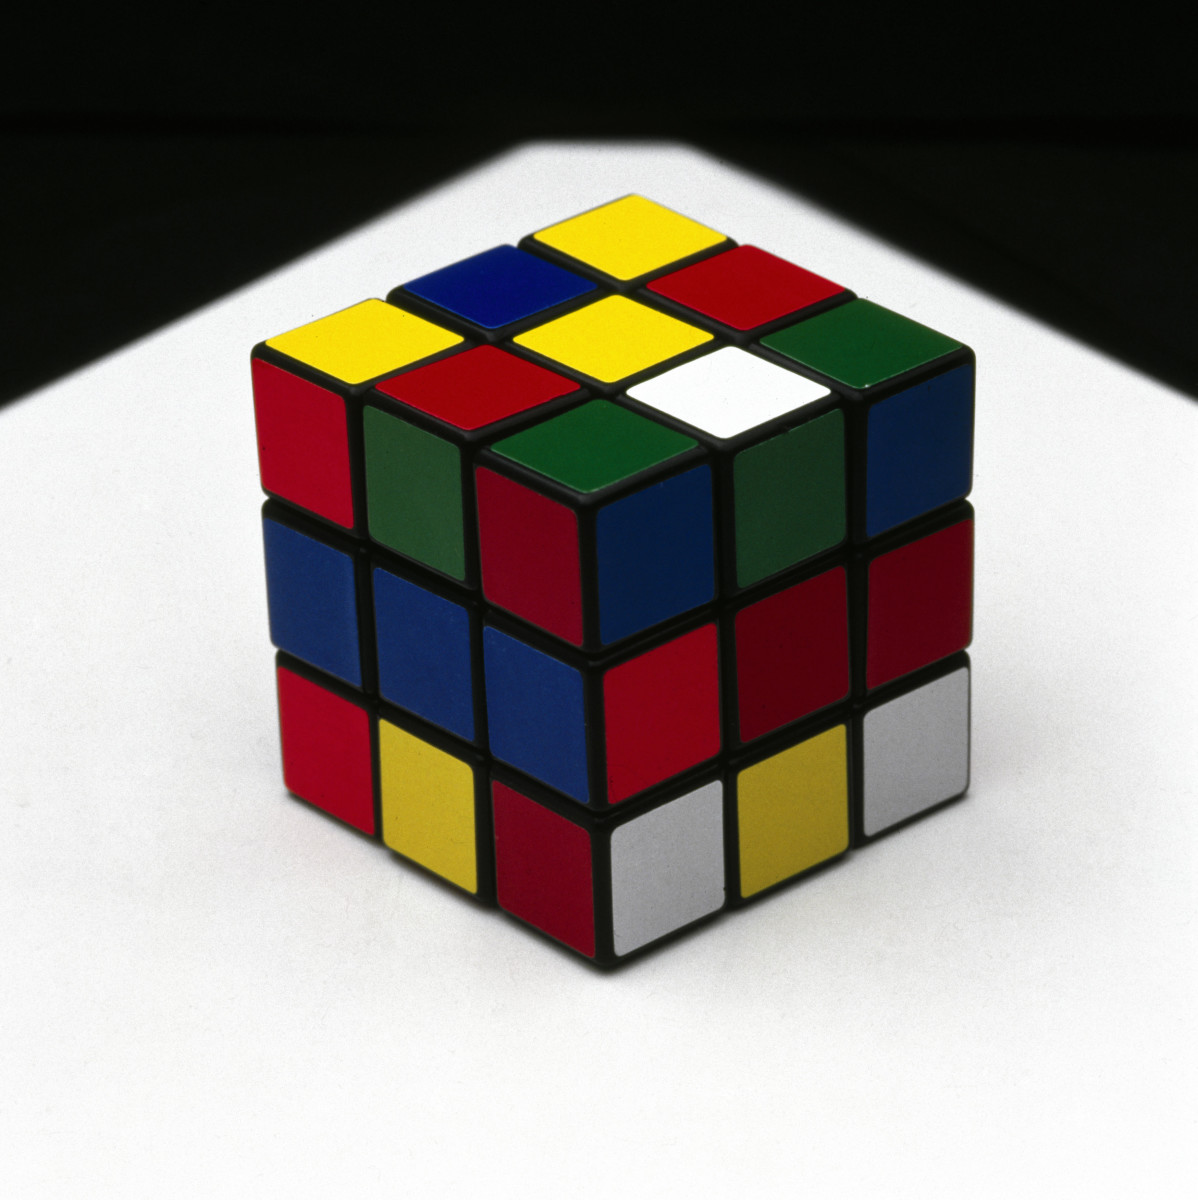 The Rubik Cube was invented by Erno Rubik in Budapest, Hungary in 1974. By 1978, the Cube was circulating in the playgrounds of Budapest, but it was not until 1980 that it made its debut in the rest of the world.